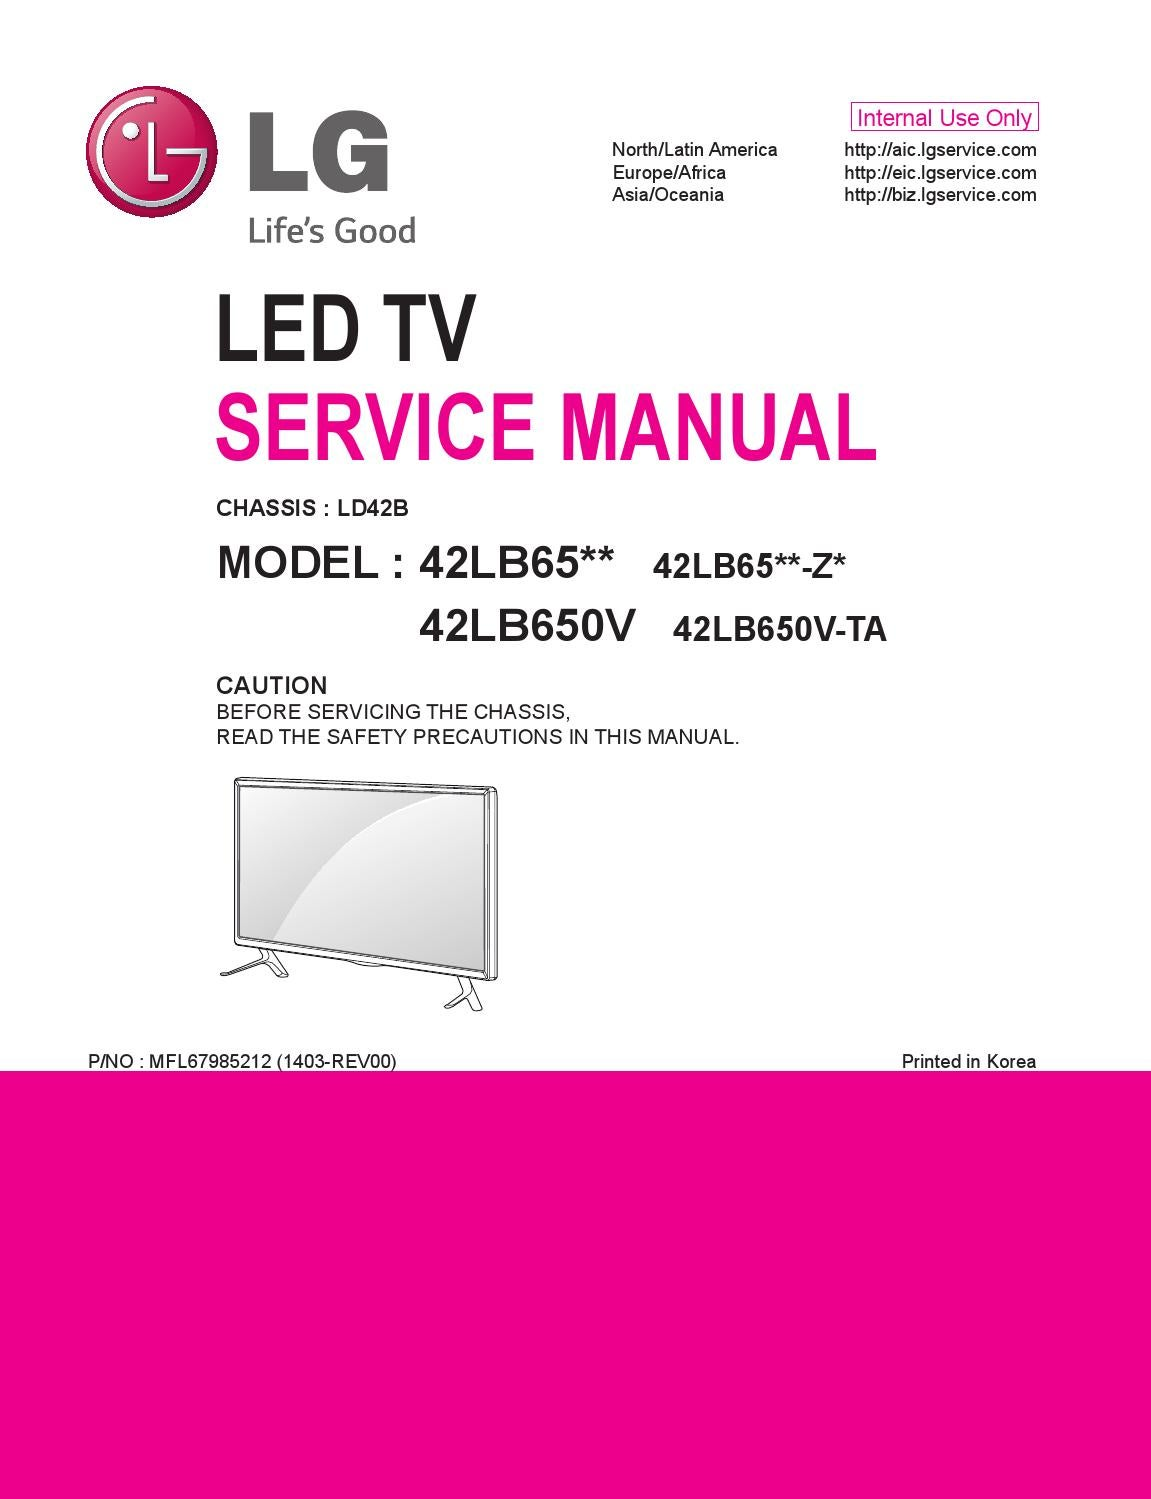 manual de servi o televisor de led marca lg modelo. Black Bedroom Furniture Sets. Home Design Ideas